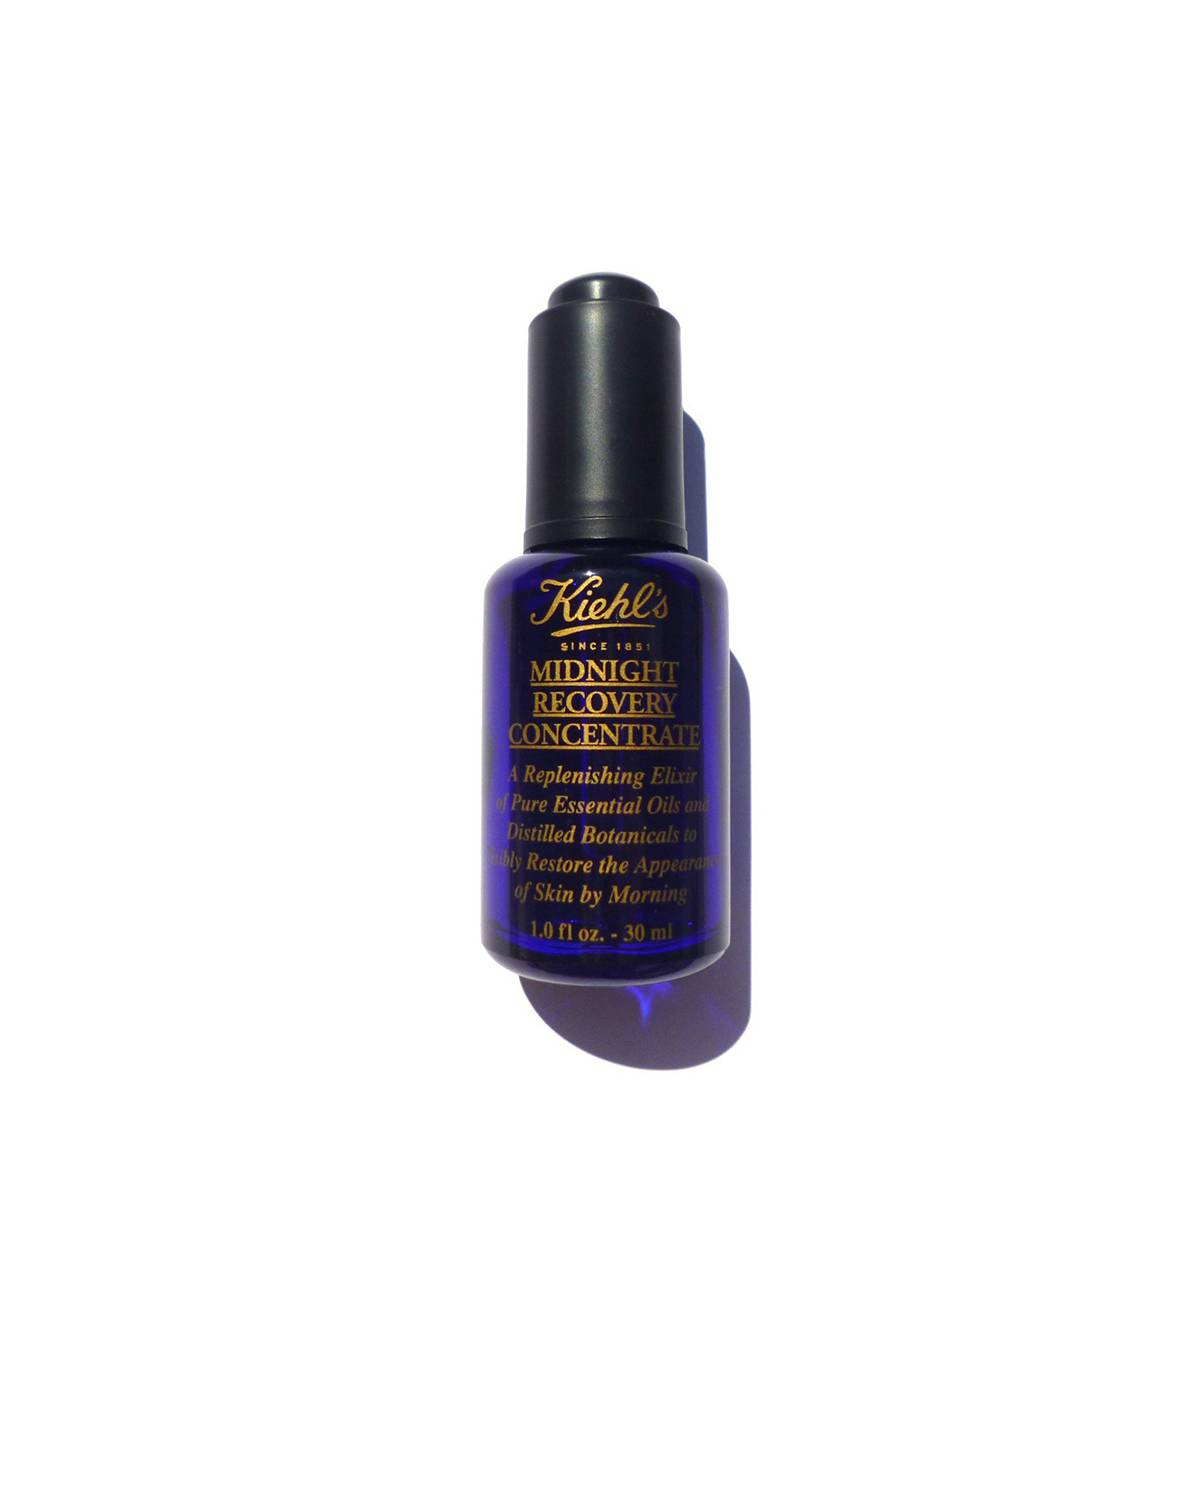 Seerum Midnight Recovery, Kiehls